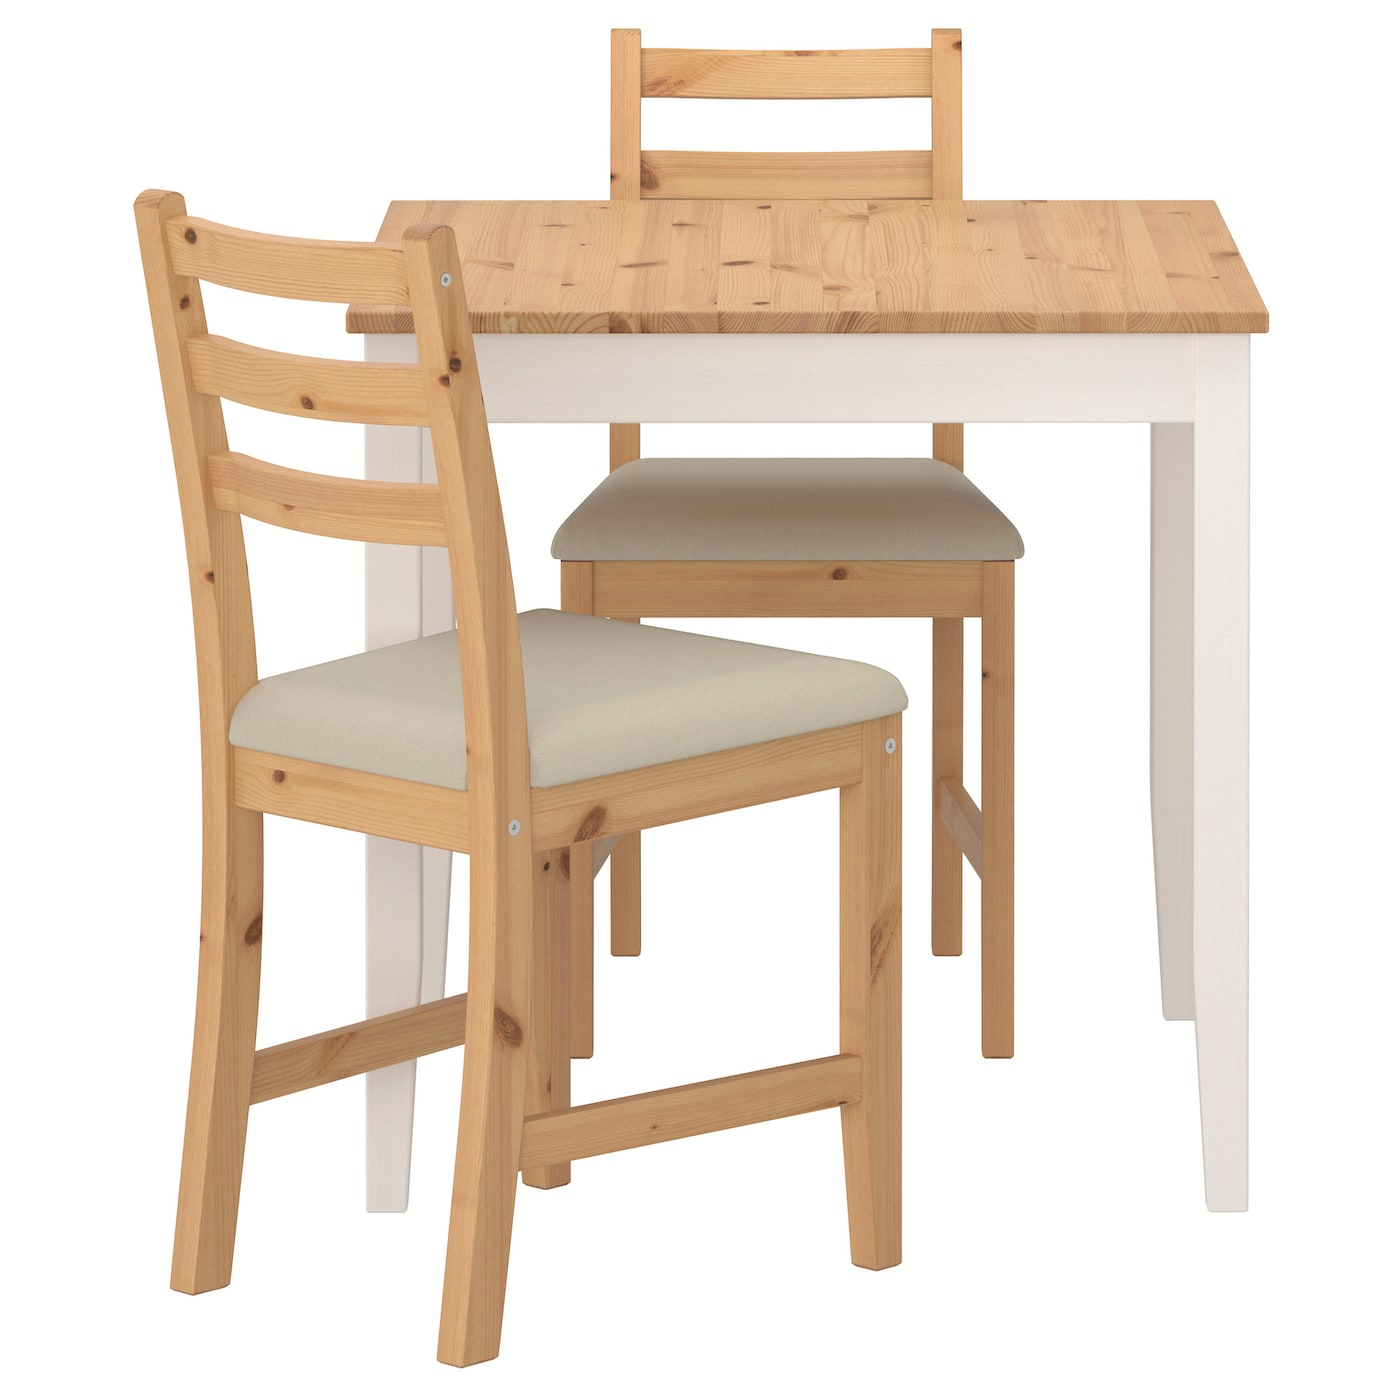 LERHAMN Table and 7 chairs - light antique stain white stain/Vittaryd beige  7x7 cm